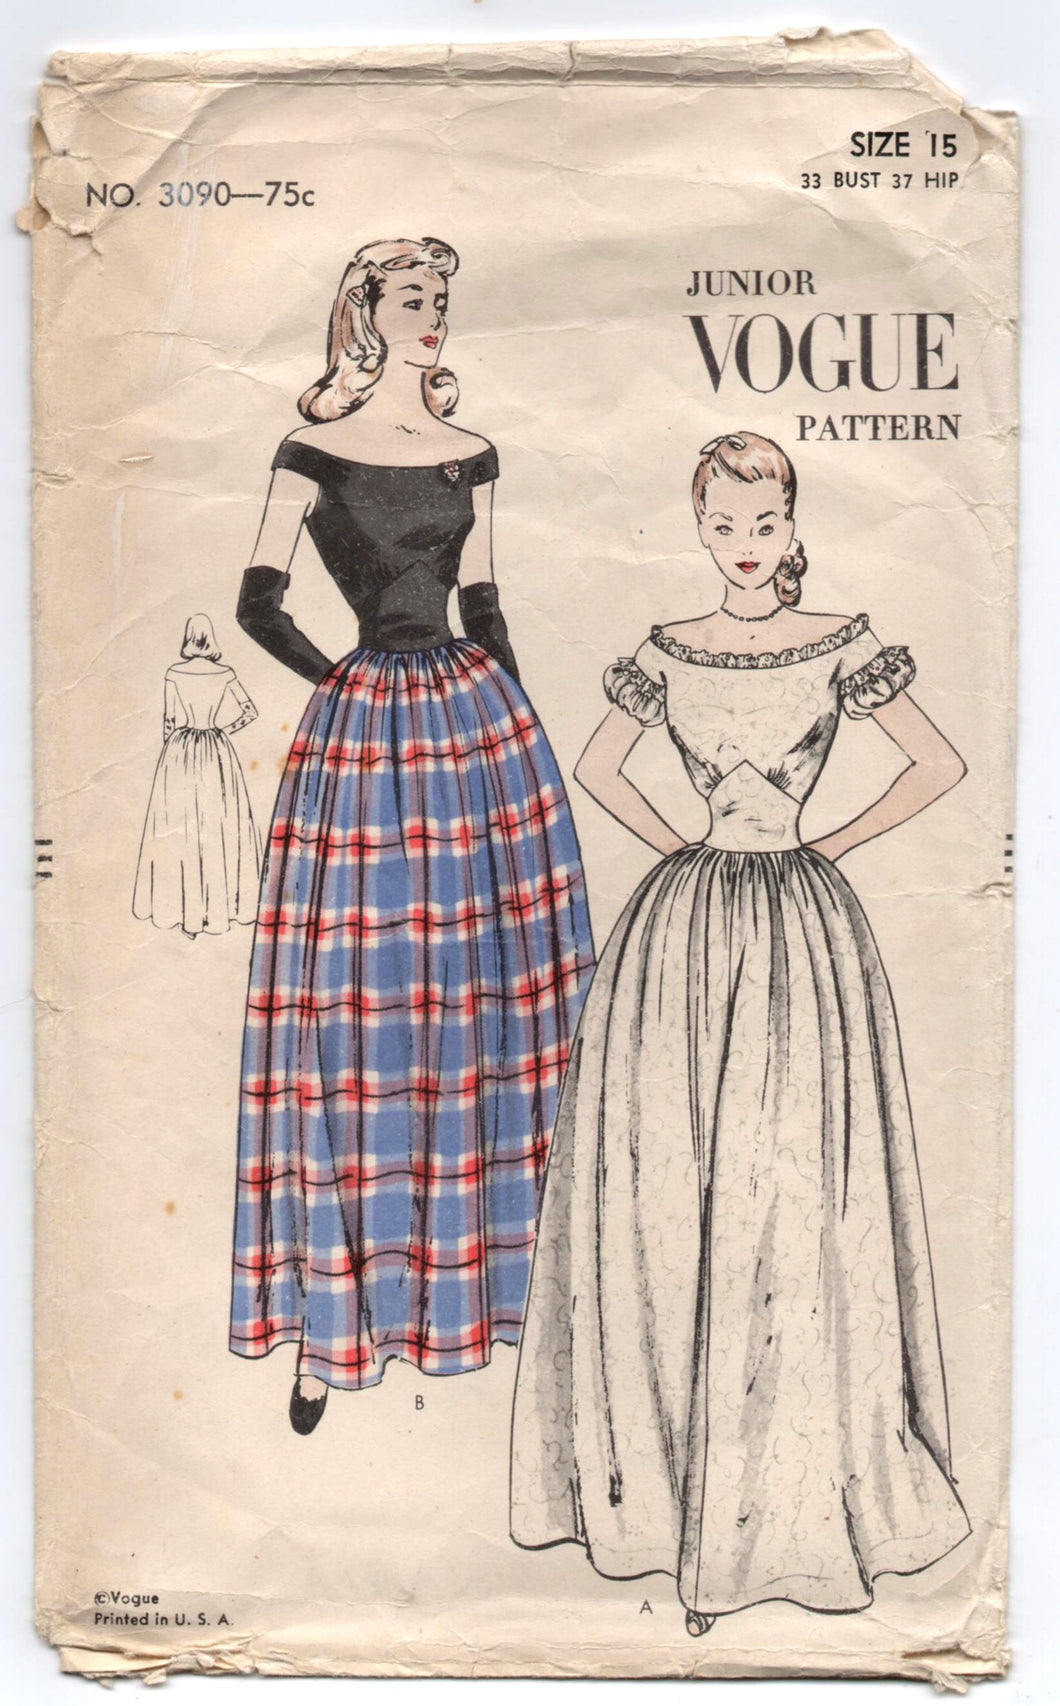 1940's Vogue Evening or Prom or Homecoming Dress with Off the Shoulder Sleeves - Bust 33